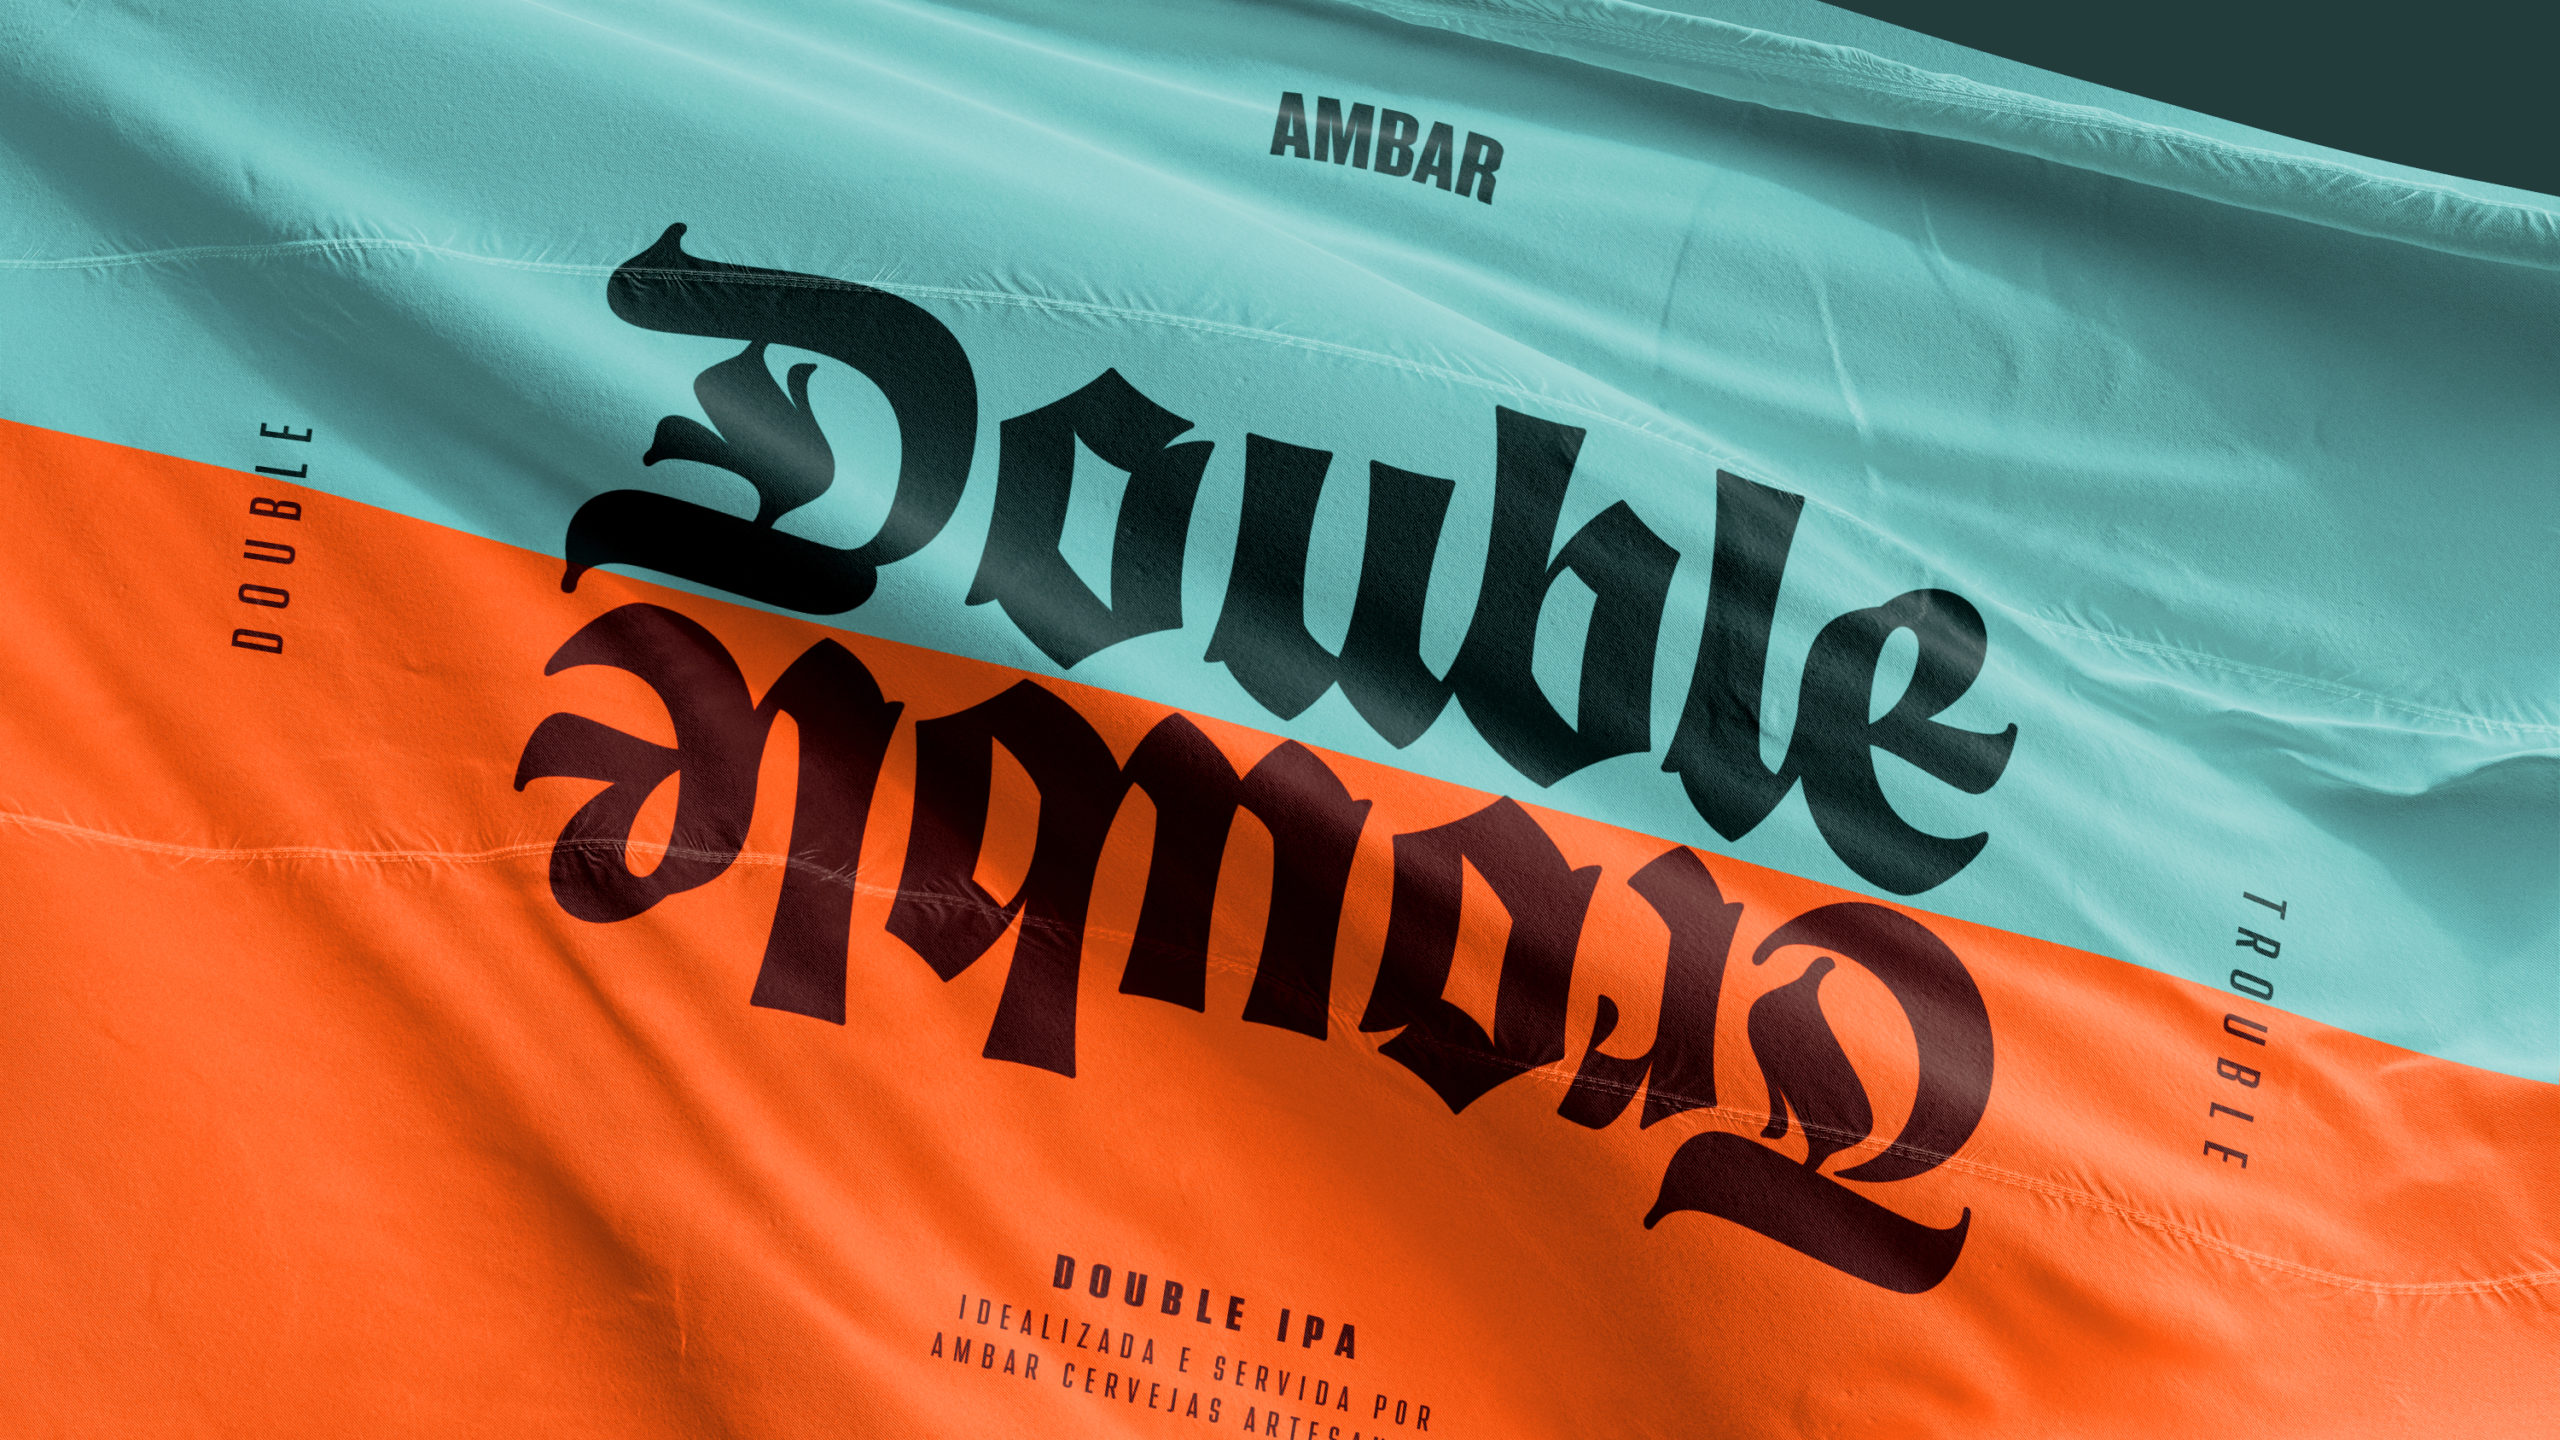 Double Trouble logo and branding on a flag